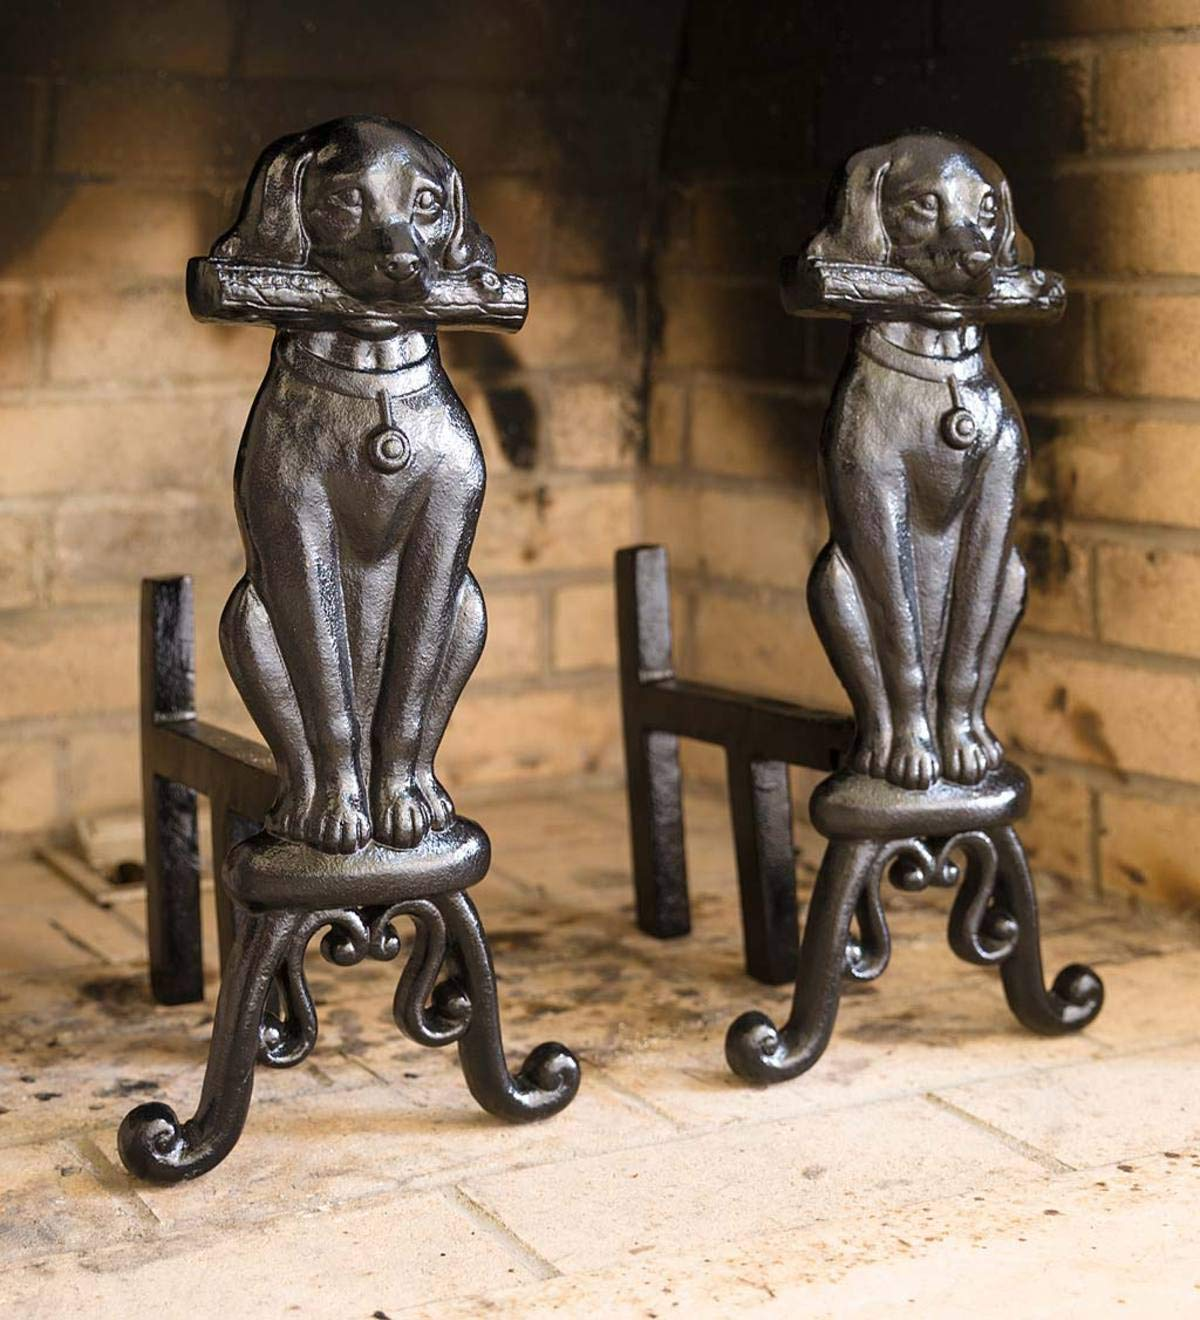 Plow & Hearth Cast Iron Fireplace Dog Andirons, Set of 2 - Dog 8''W x 2.5''D x 17''H; Back Shank 10''L with 8.5''H Back Support and 5''H Clearance Beneath; 12 lbs. Each